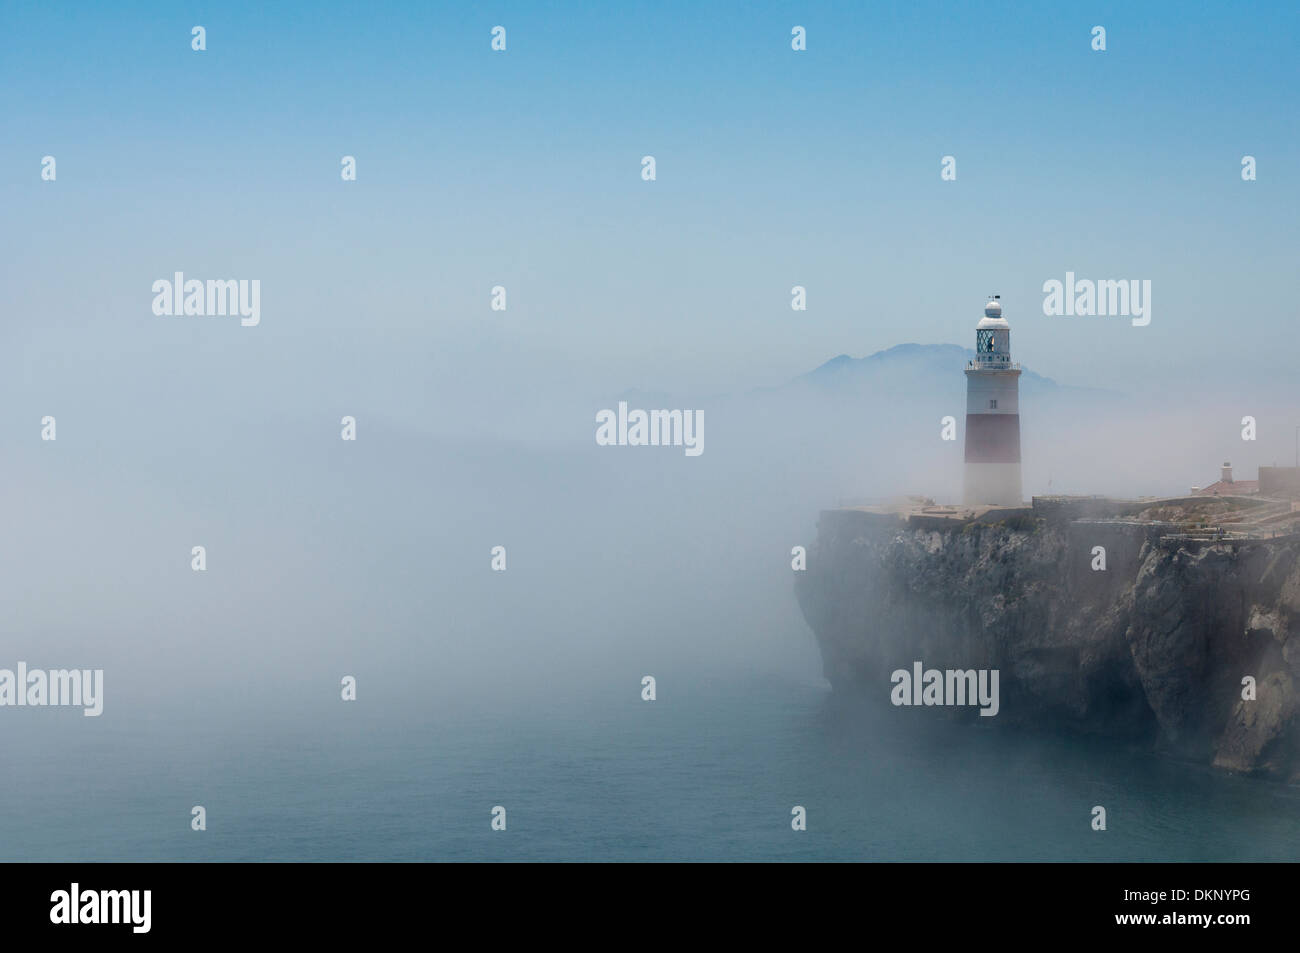 Gibraltars lighthouse at Europa Point standing in the mist with Africa in the distance. - Stock Image